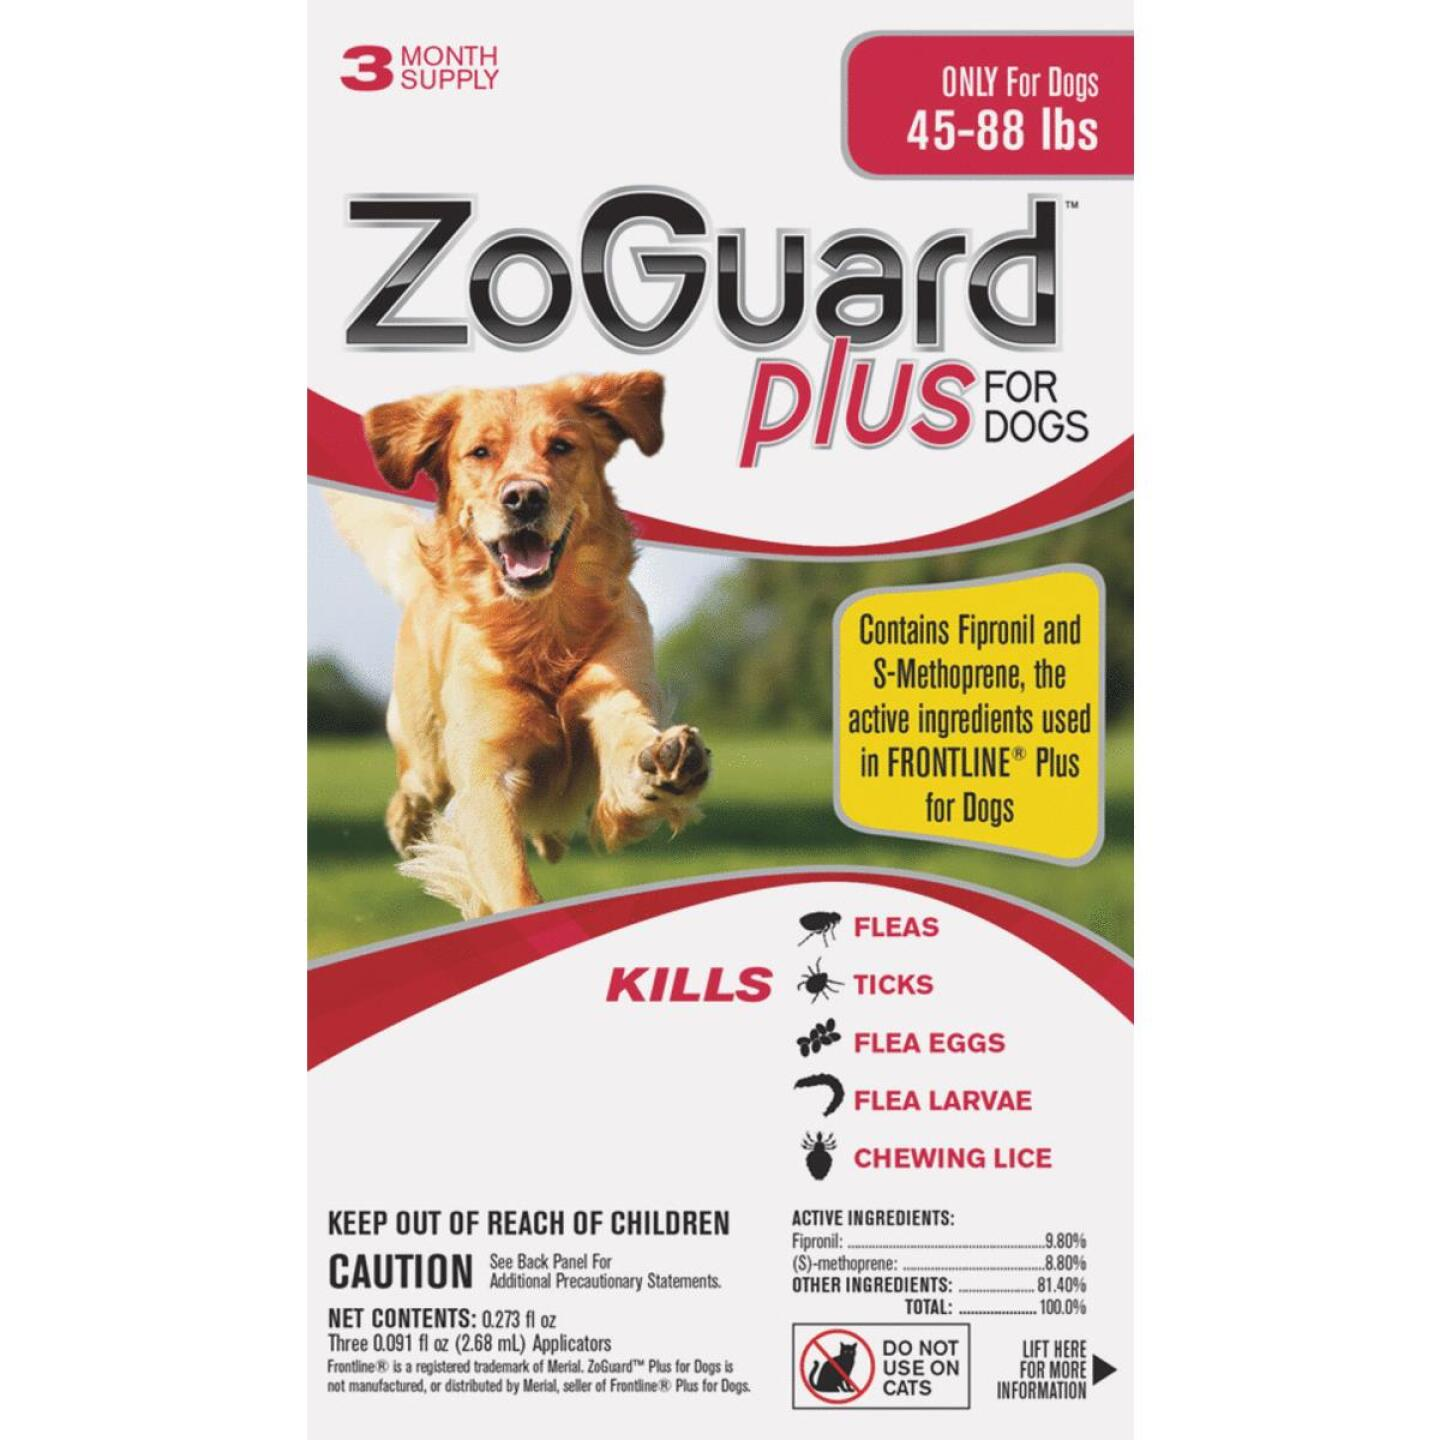 ZoGuard Plus 3-Month Supply Flea & Tick Treatment For Dogs 45 Lb. to 88 Lb. Image 1